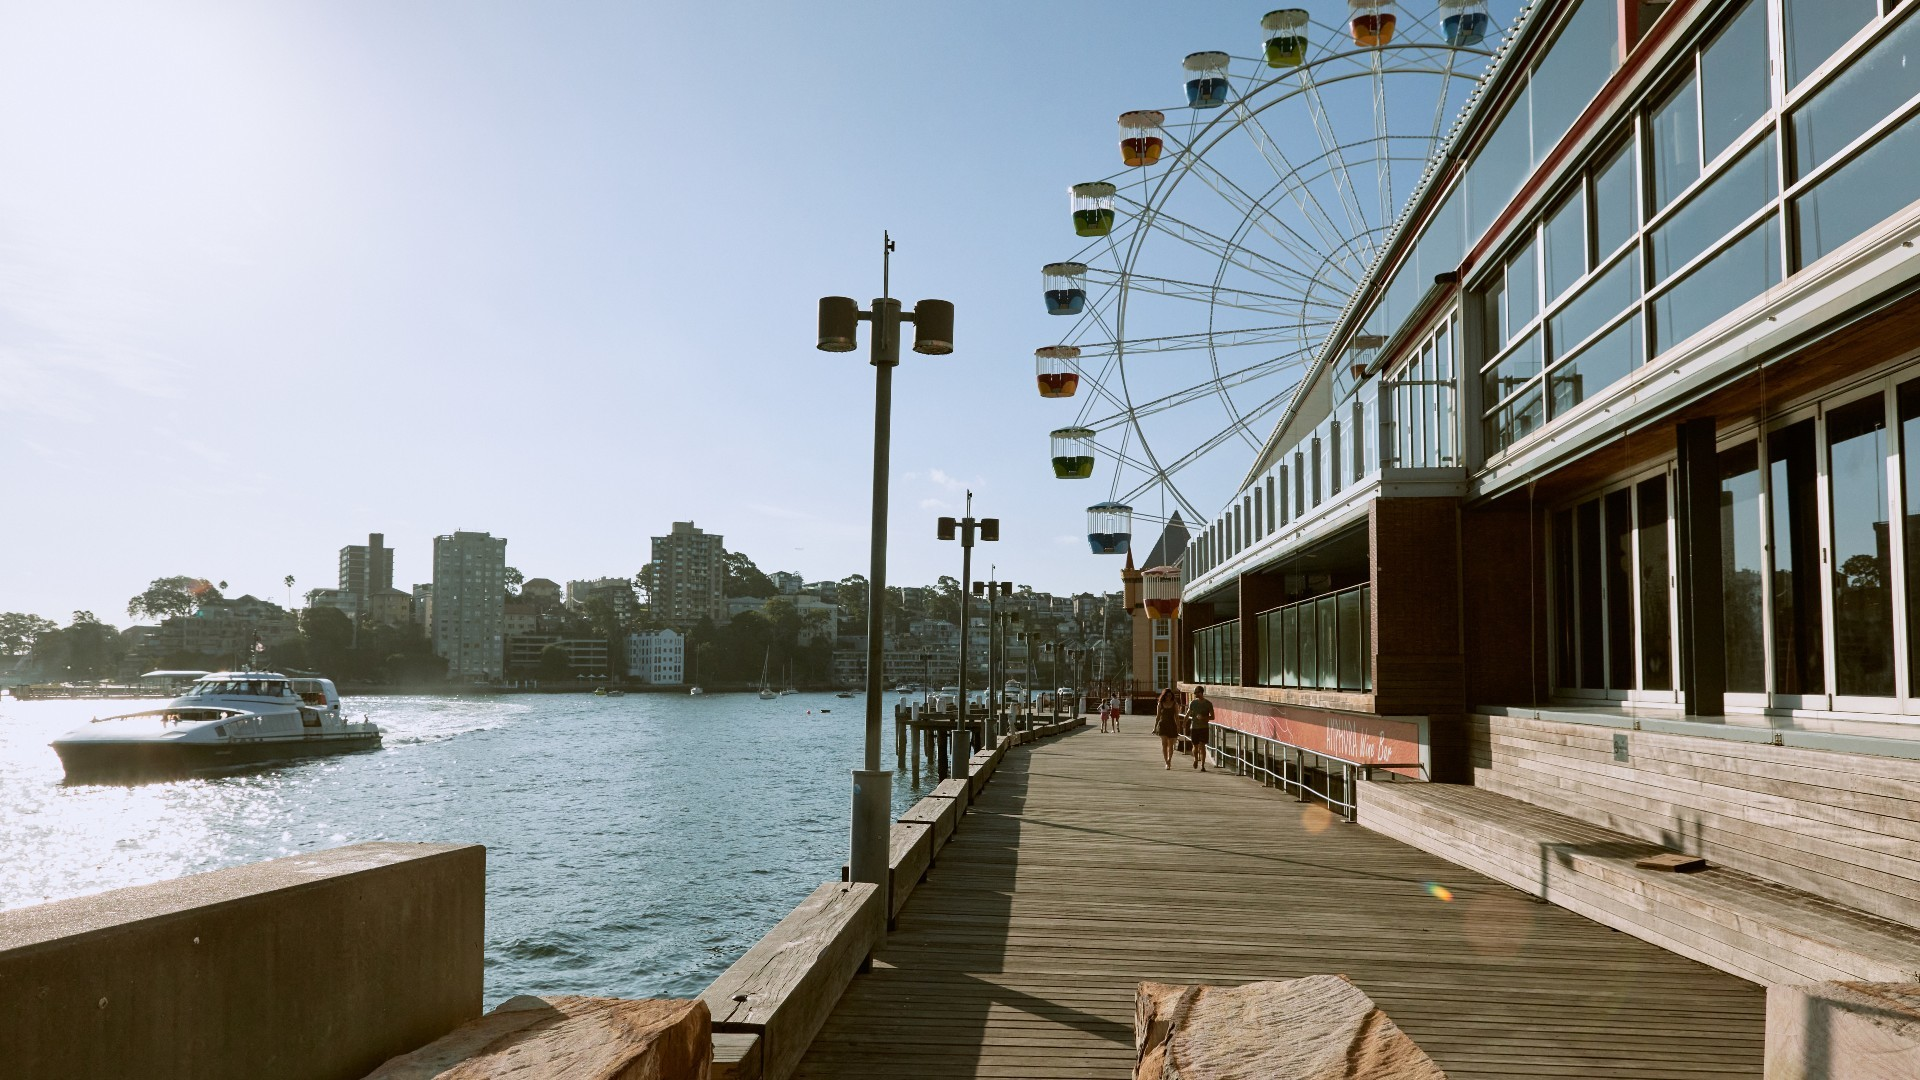 Wheel and pier